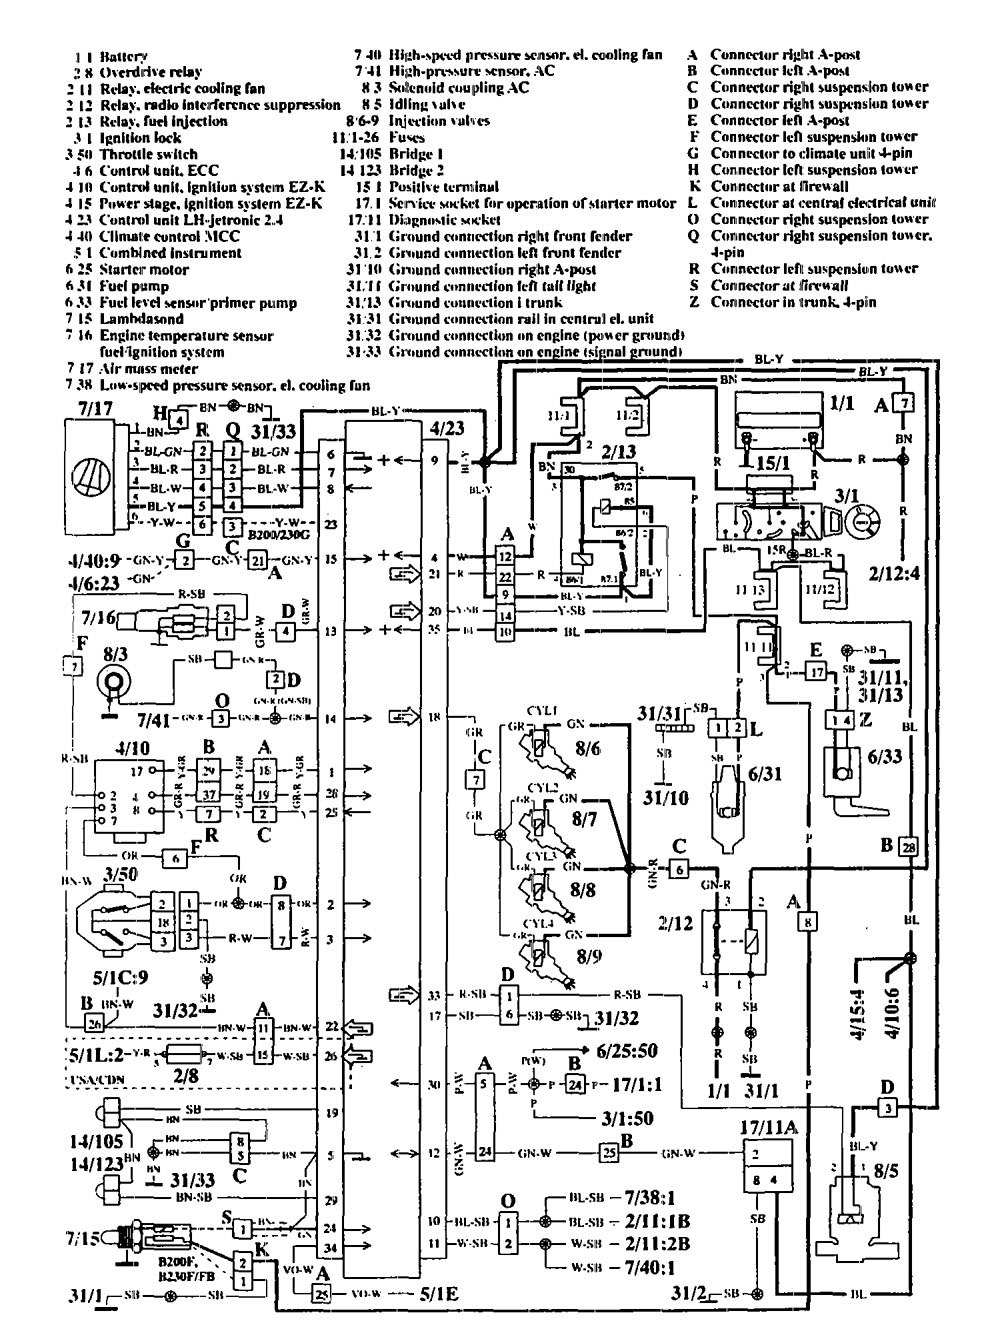 Wiring Diagram Volvo 940 Se Diagrams D13 Engine 1992 Fuel Controls Relay Truck Schematic